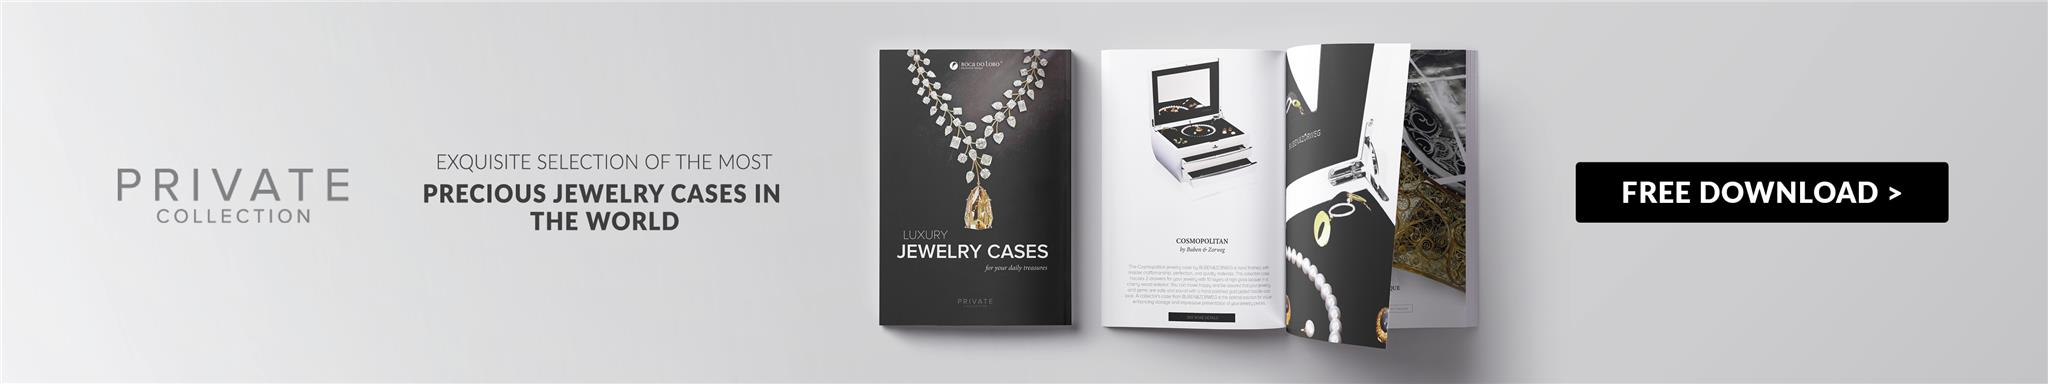 Jewelry Cases Ebook Boca do Lobo h. moser This H. Moser & Cie Watch is very lookalike an Apple Watch precious jewelry cases in the world banner